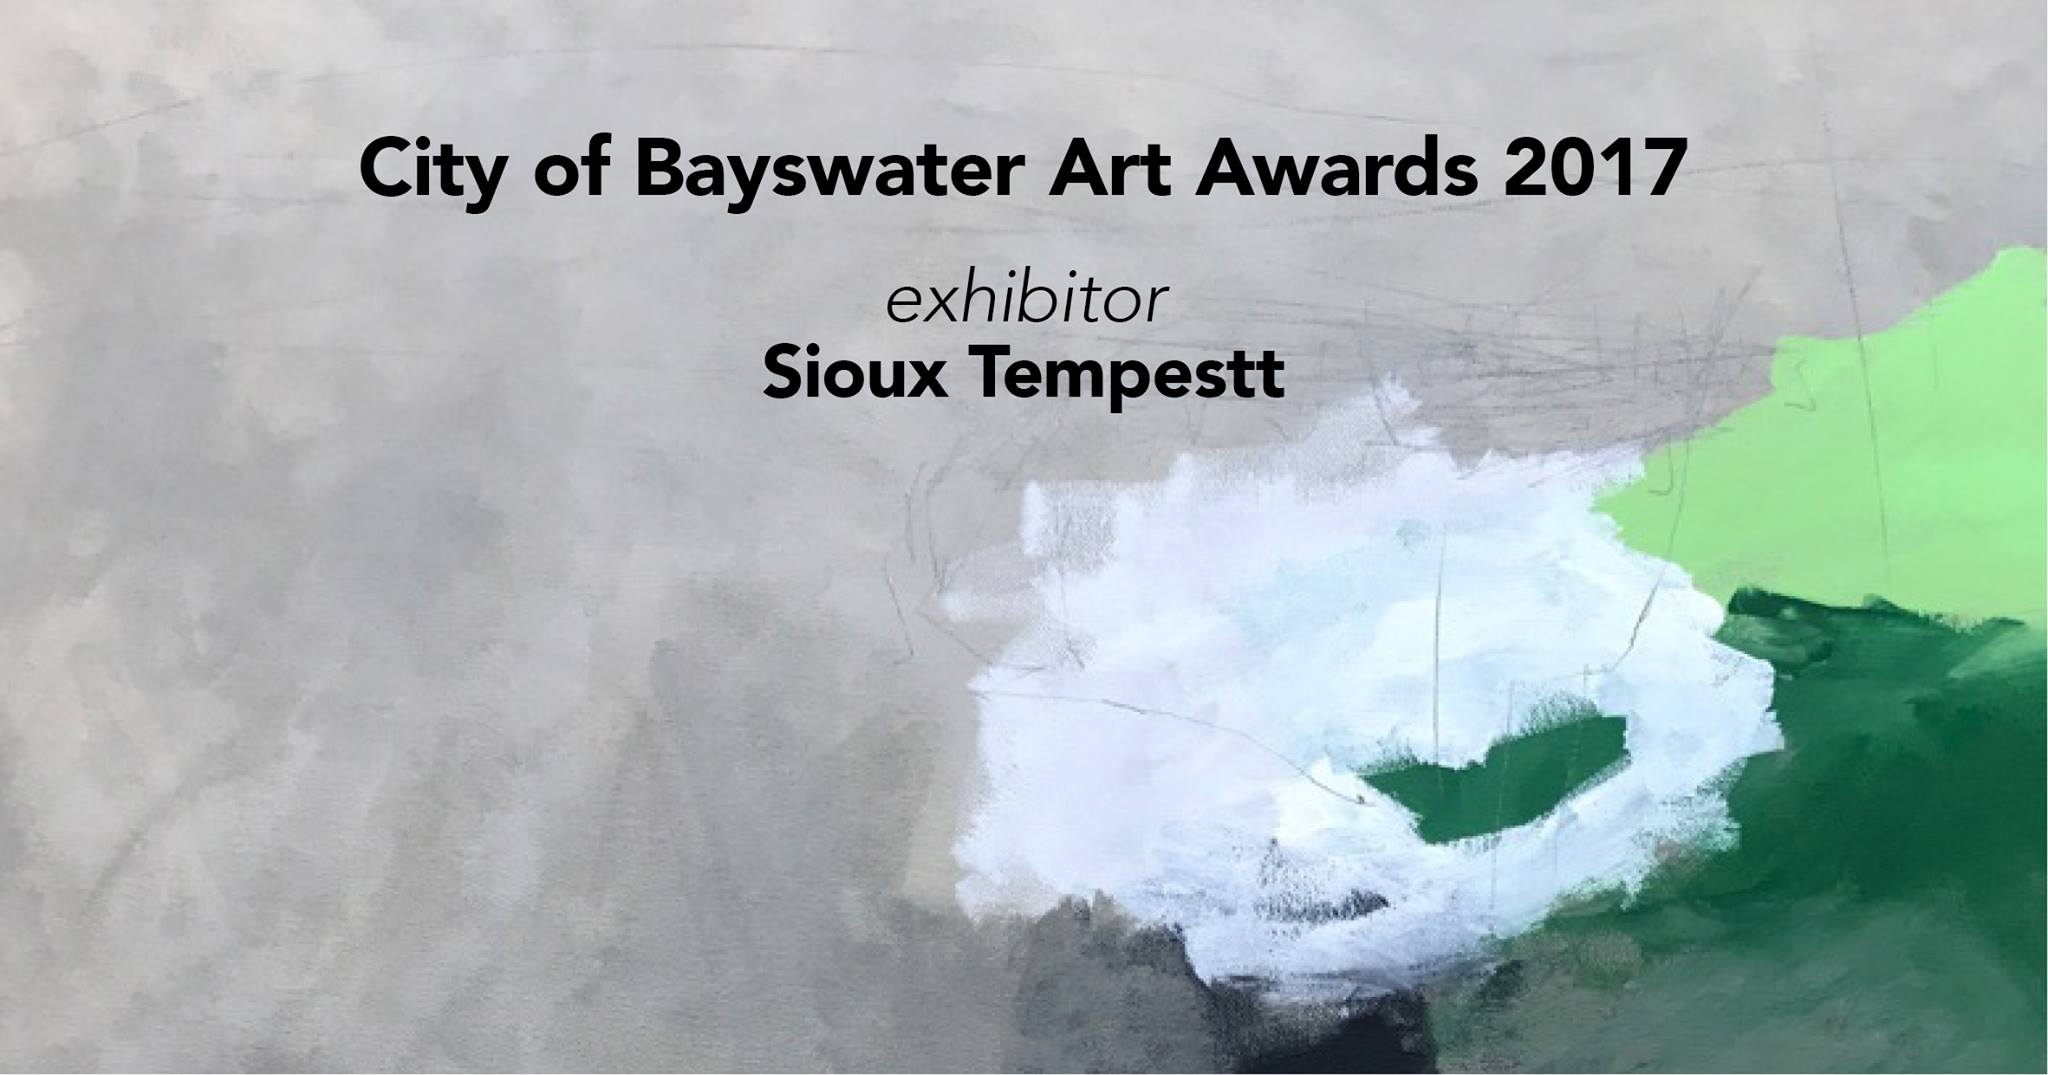 City of Bayswater Art Awards 2017 - Exhibitor Sioux Tempestt